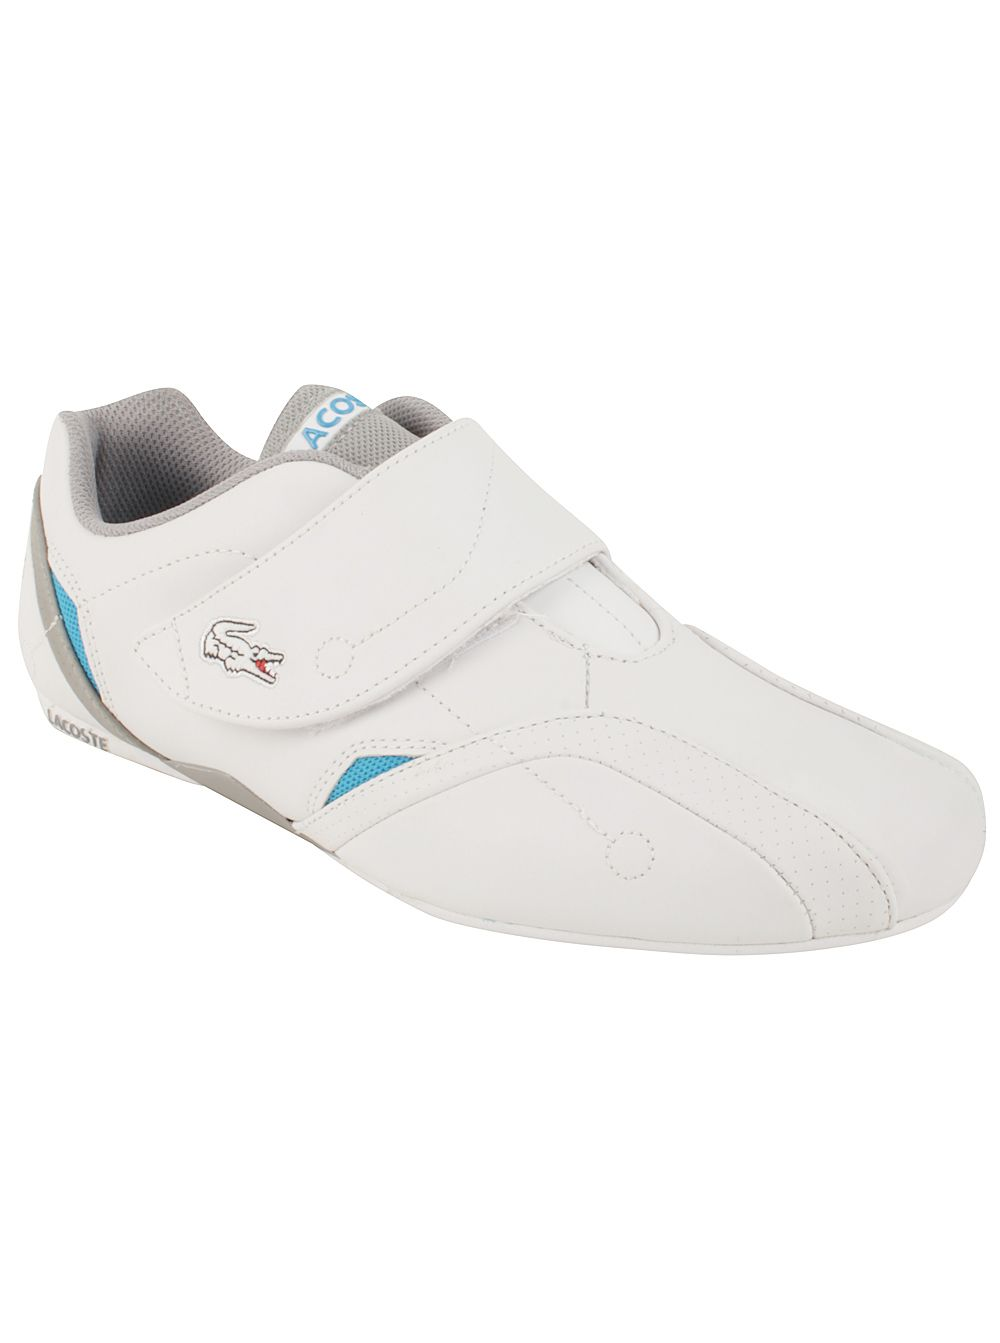 Lacoste Men's Protect Pit Wja in White/Grey Step up any casual look with this Protect Pit model. It still boasts it's sleek laceless design, but in sleek contrast of White and Grey. The inside is meshed lined for extra comfort, plus a real cushy sole for ultimate support. Start your day in a flash with its easy on and off design!